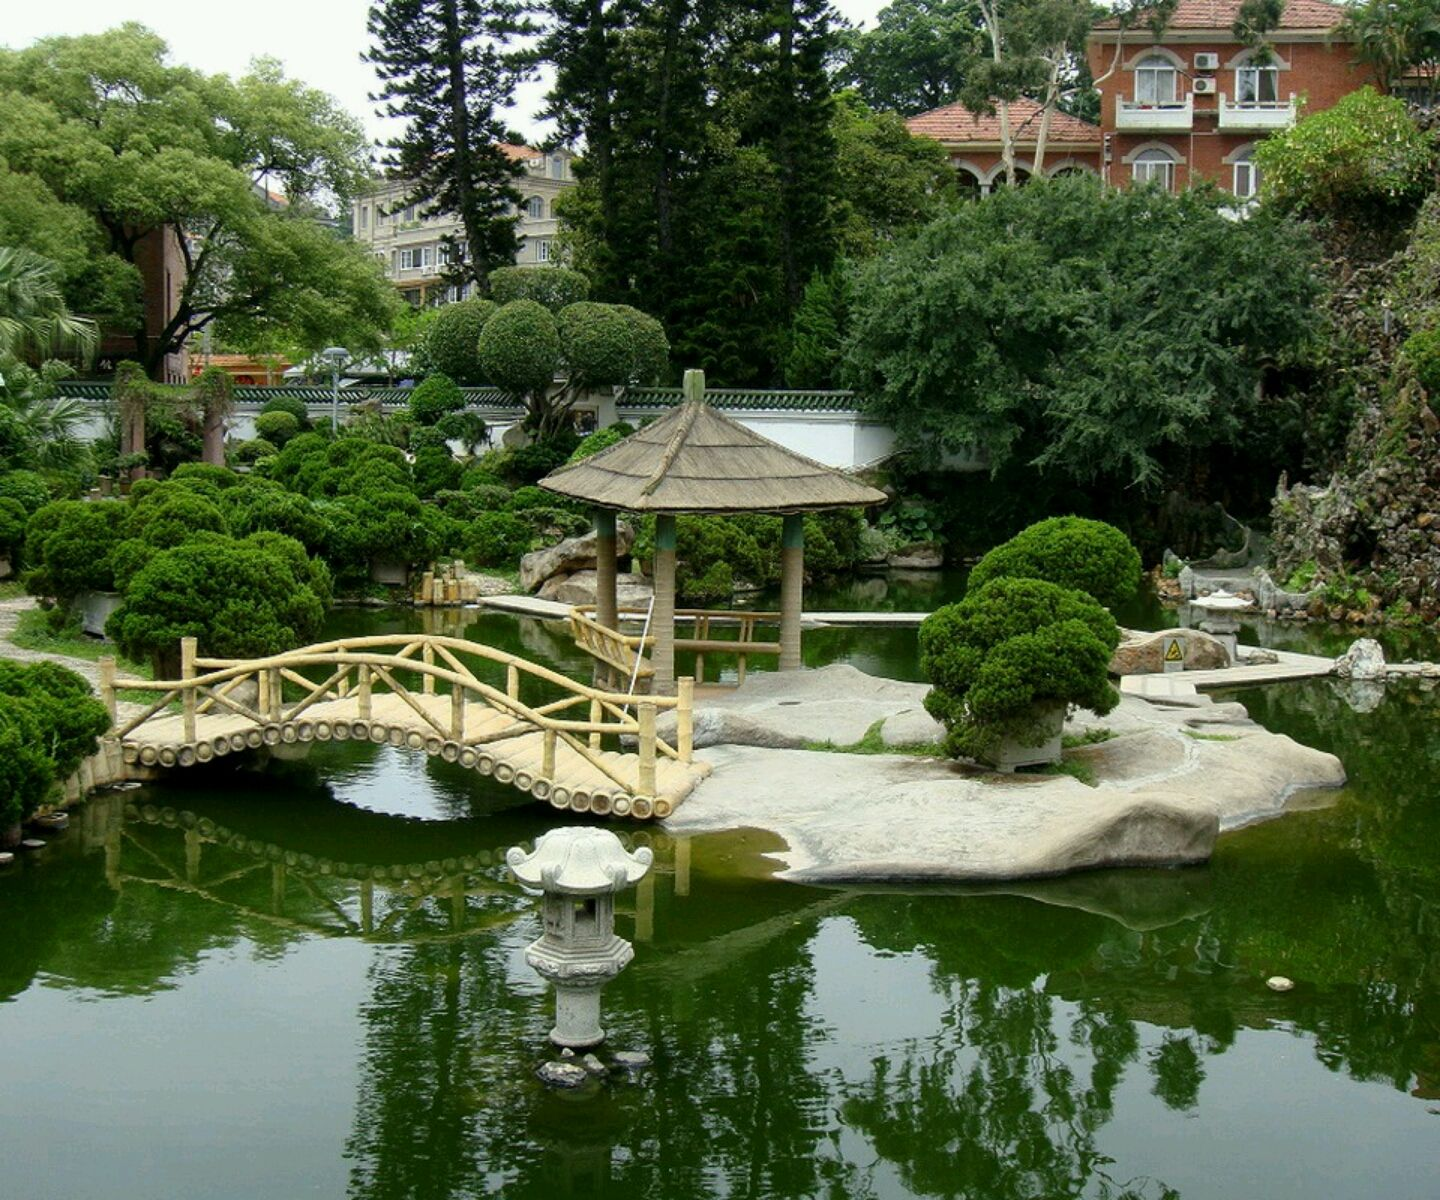 Some Hgtv Remodeling Ideas For Home And Garden: Stunning Japanese Garden  Design Feat Small Outdoor Patio With Umbrella Ideas ~ Rudedogdesign.